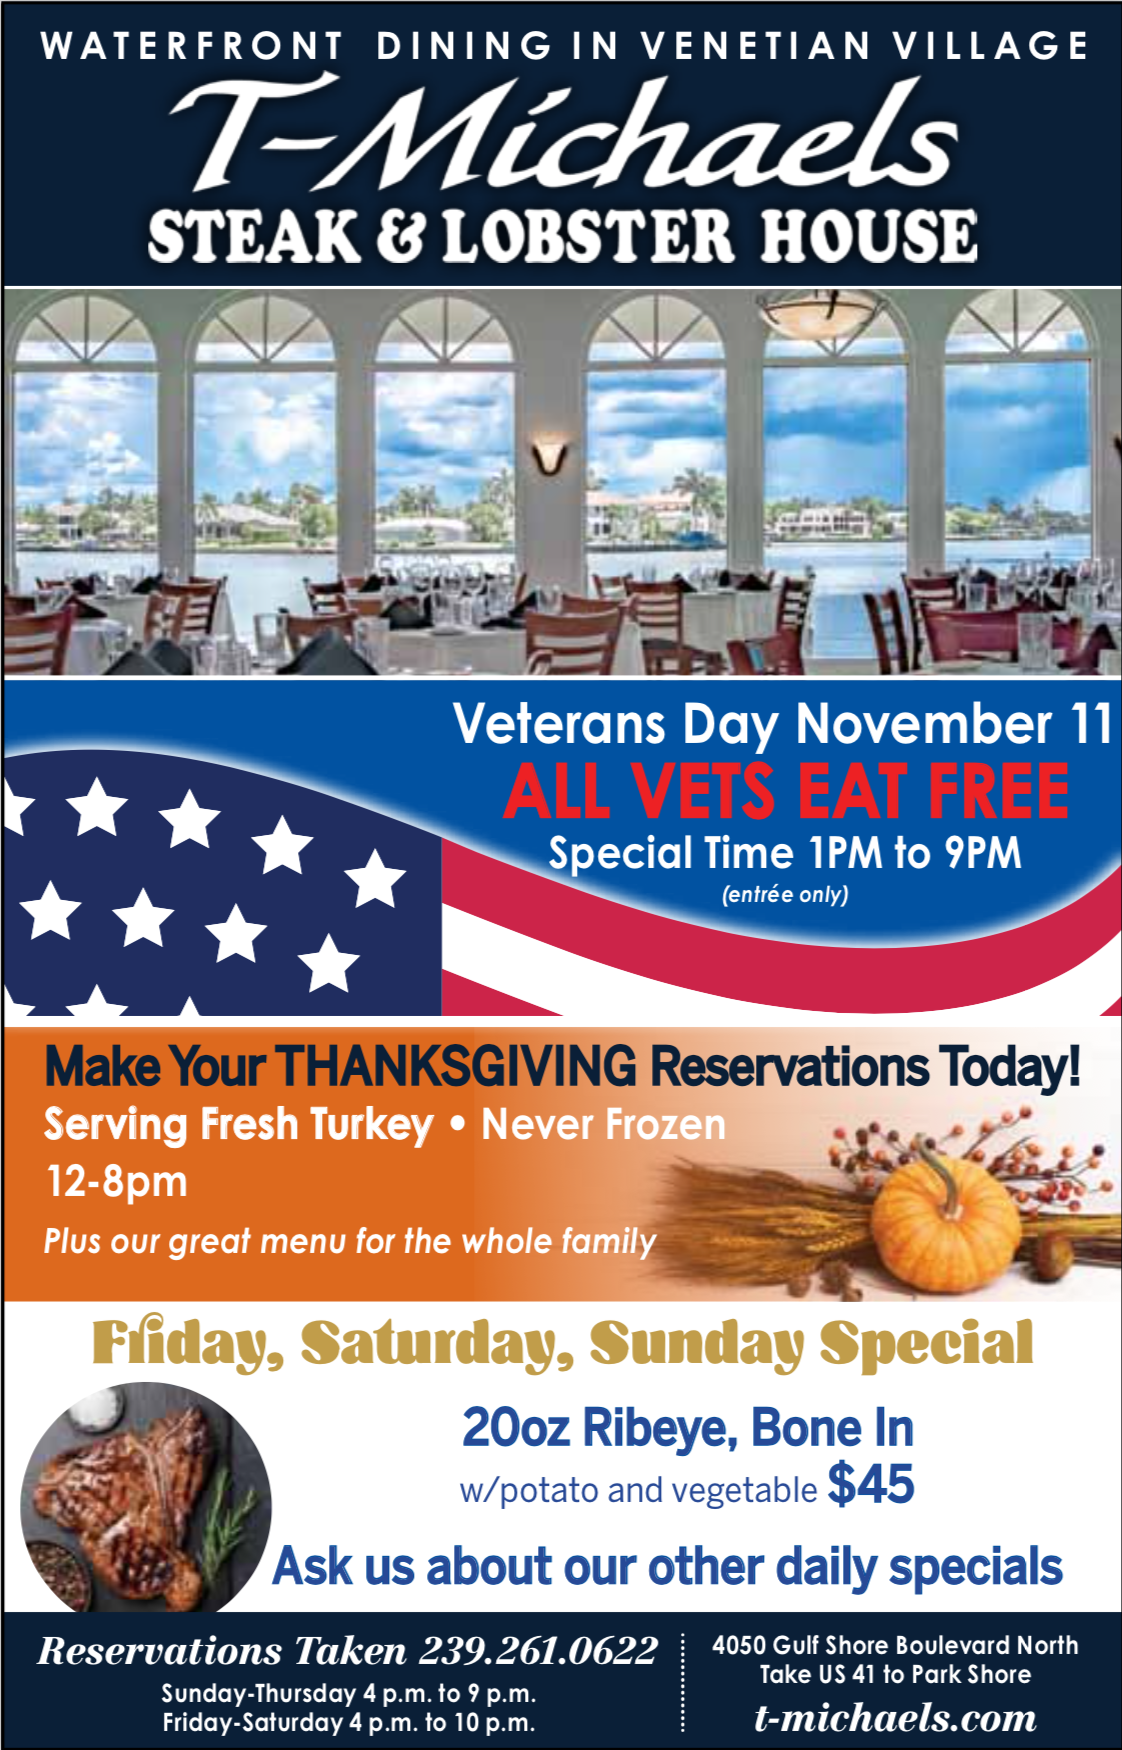 Veterans Day at T-Michaels Steak and Lobster House